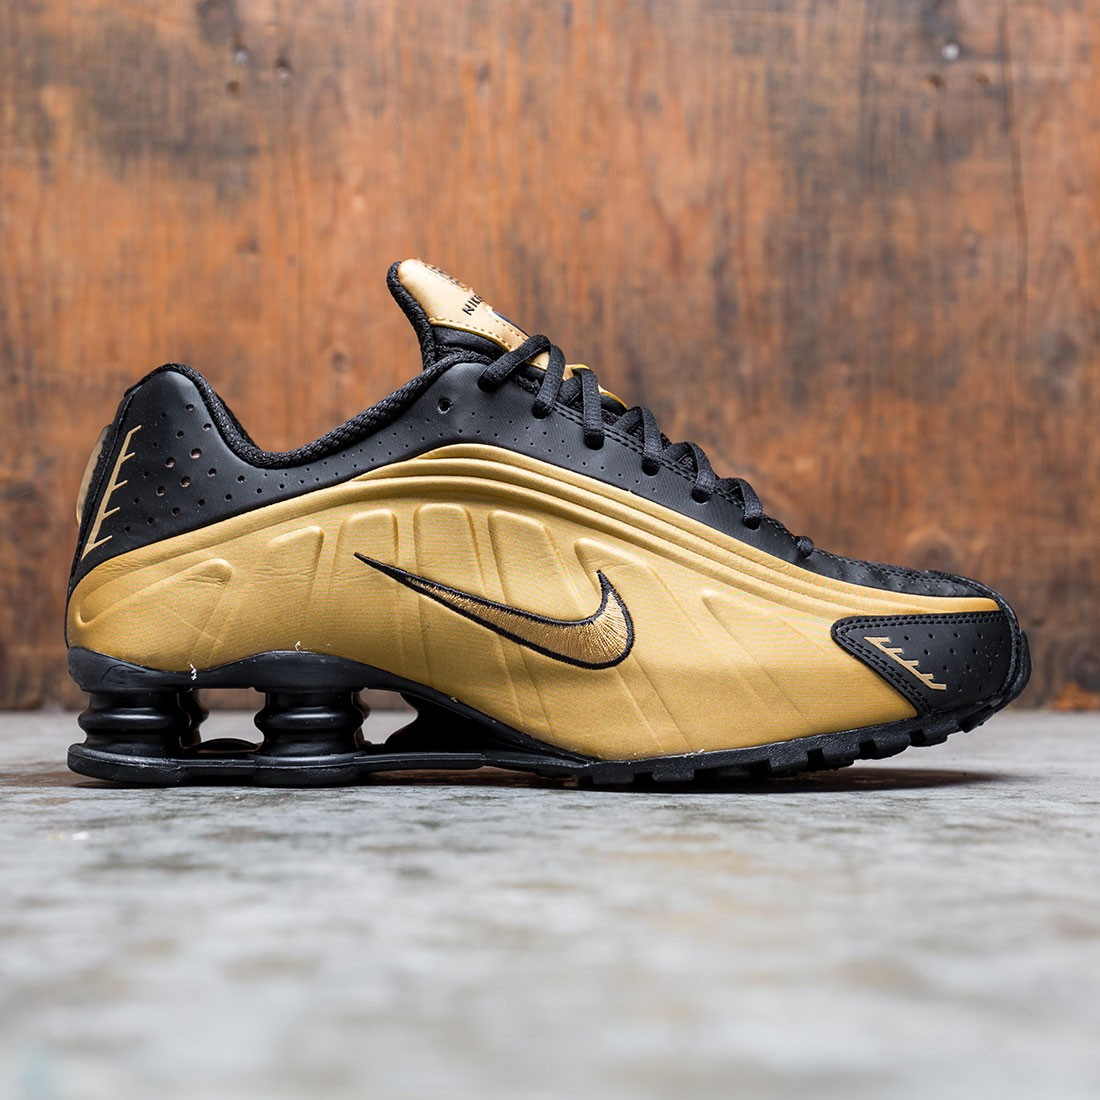 Nike Men Shox R4 (metallic gold / metallic gold-black)